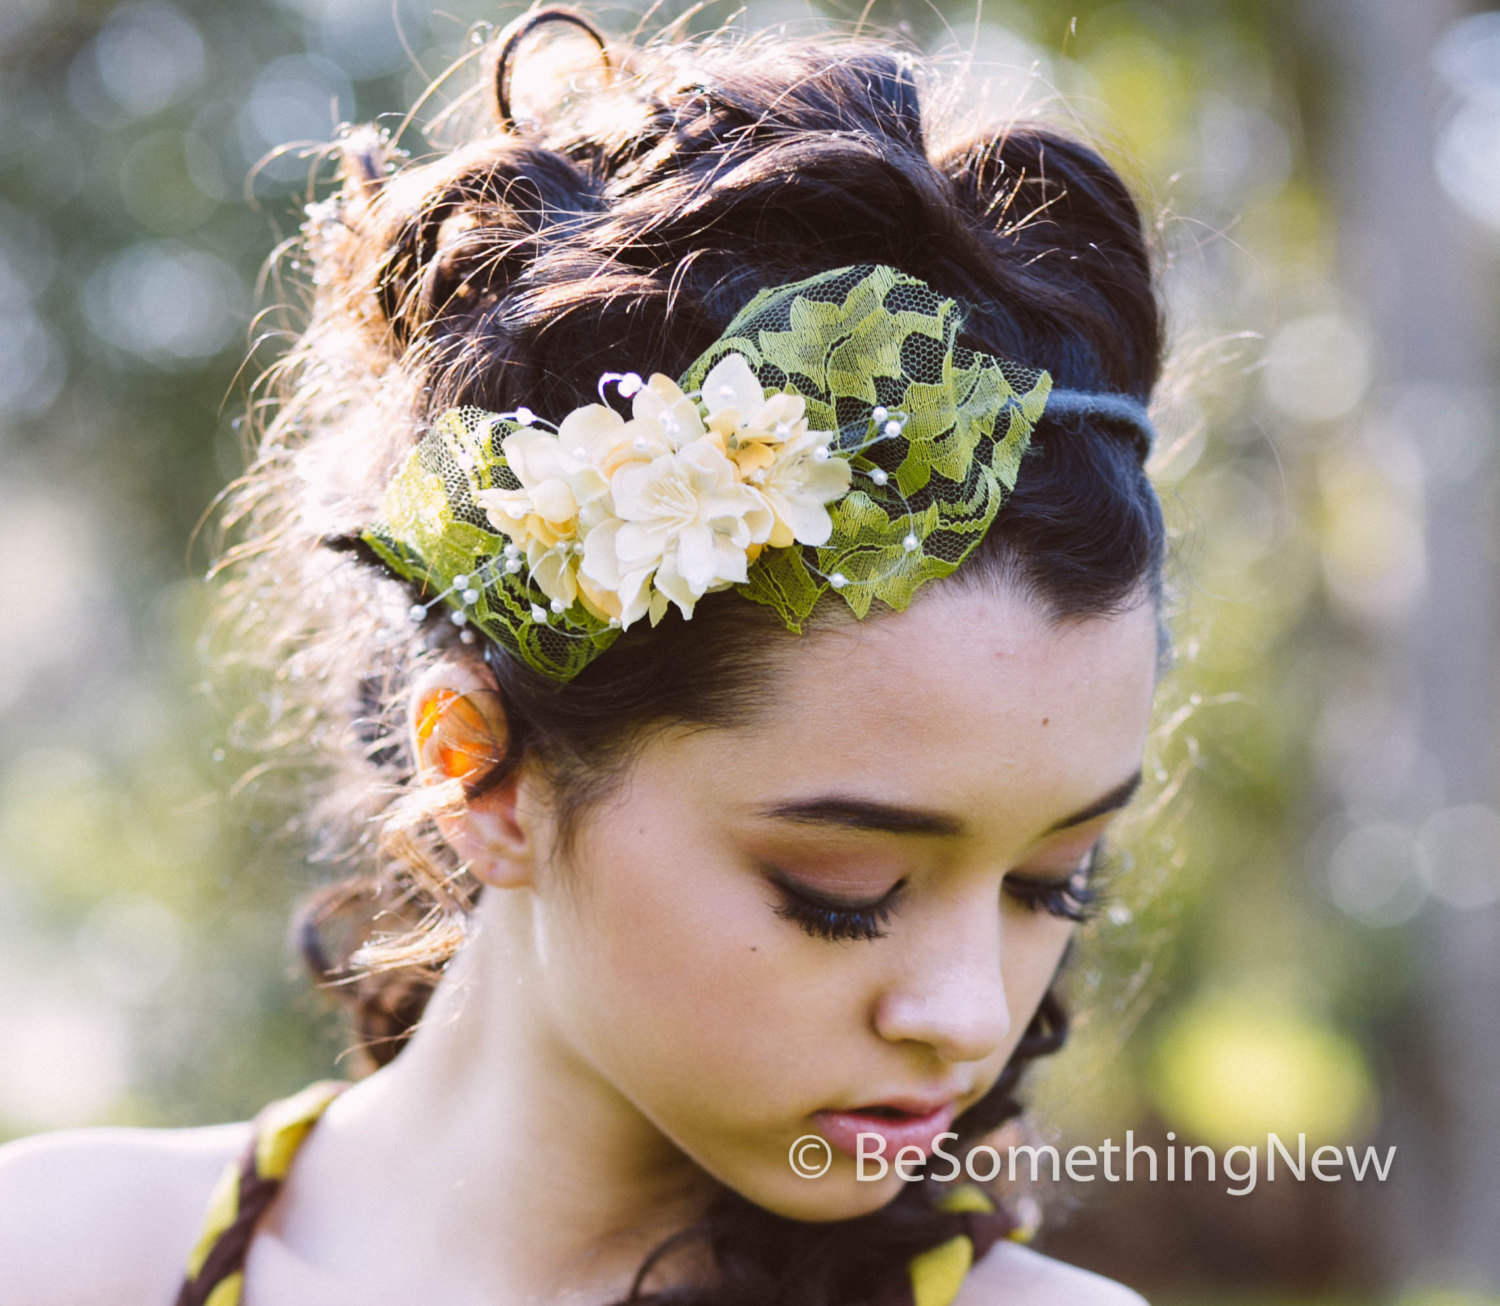 Flower Crown Headband Lace and Flowers Spring Headband 5310d97082e